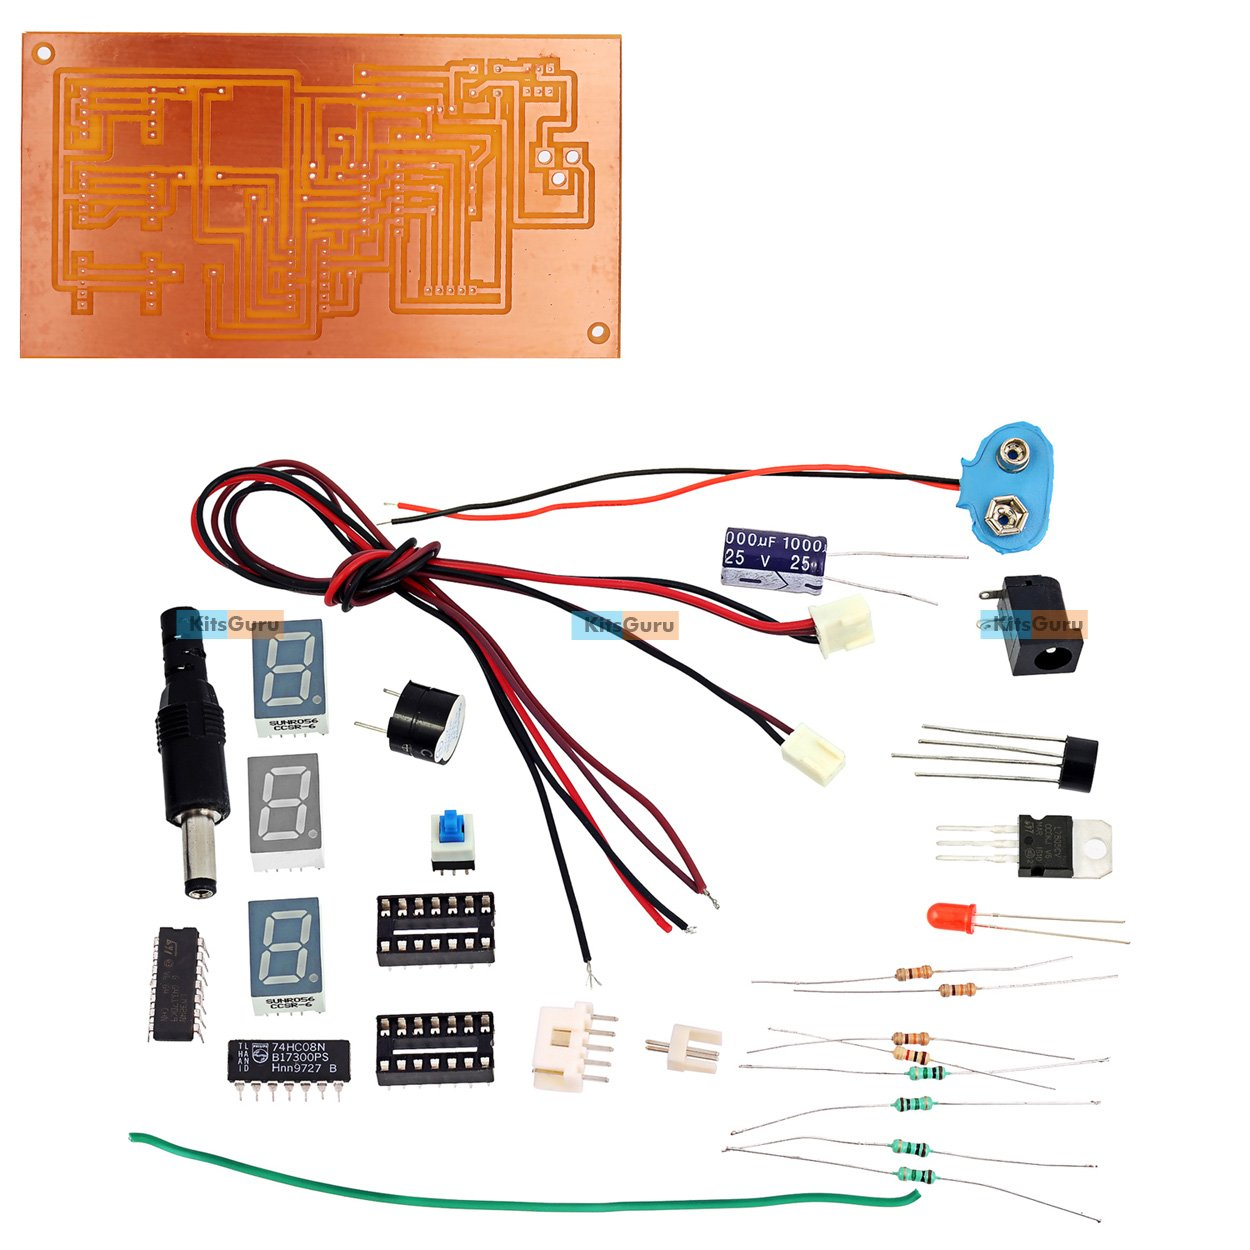 Kitsguru Diy Kit Water Level Indicator Using 7 Segment Display Circuit Today Electronics Mini Projects Diagram Ask Home Lgkt007